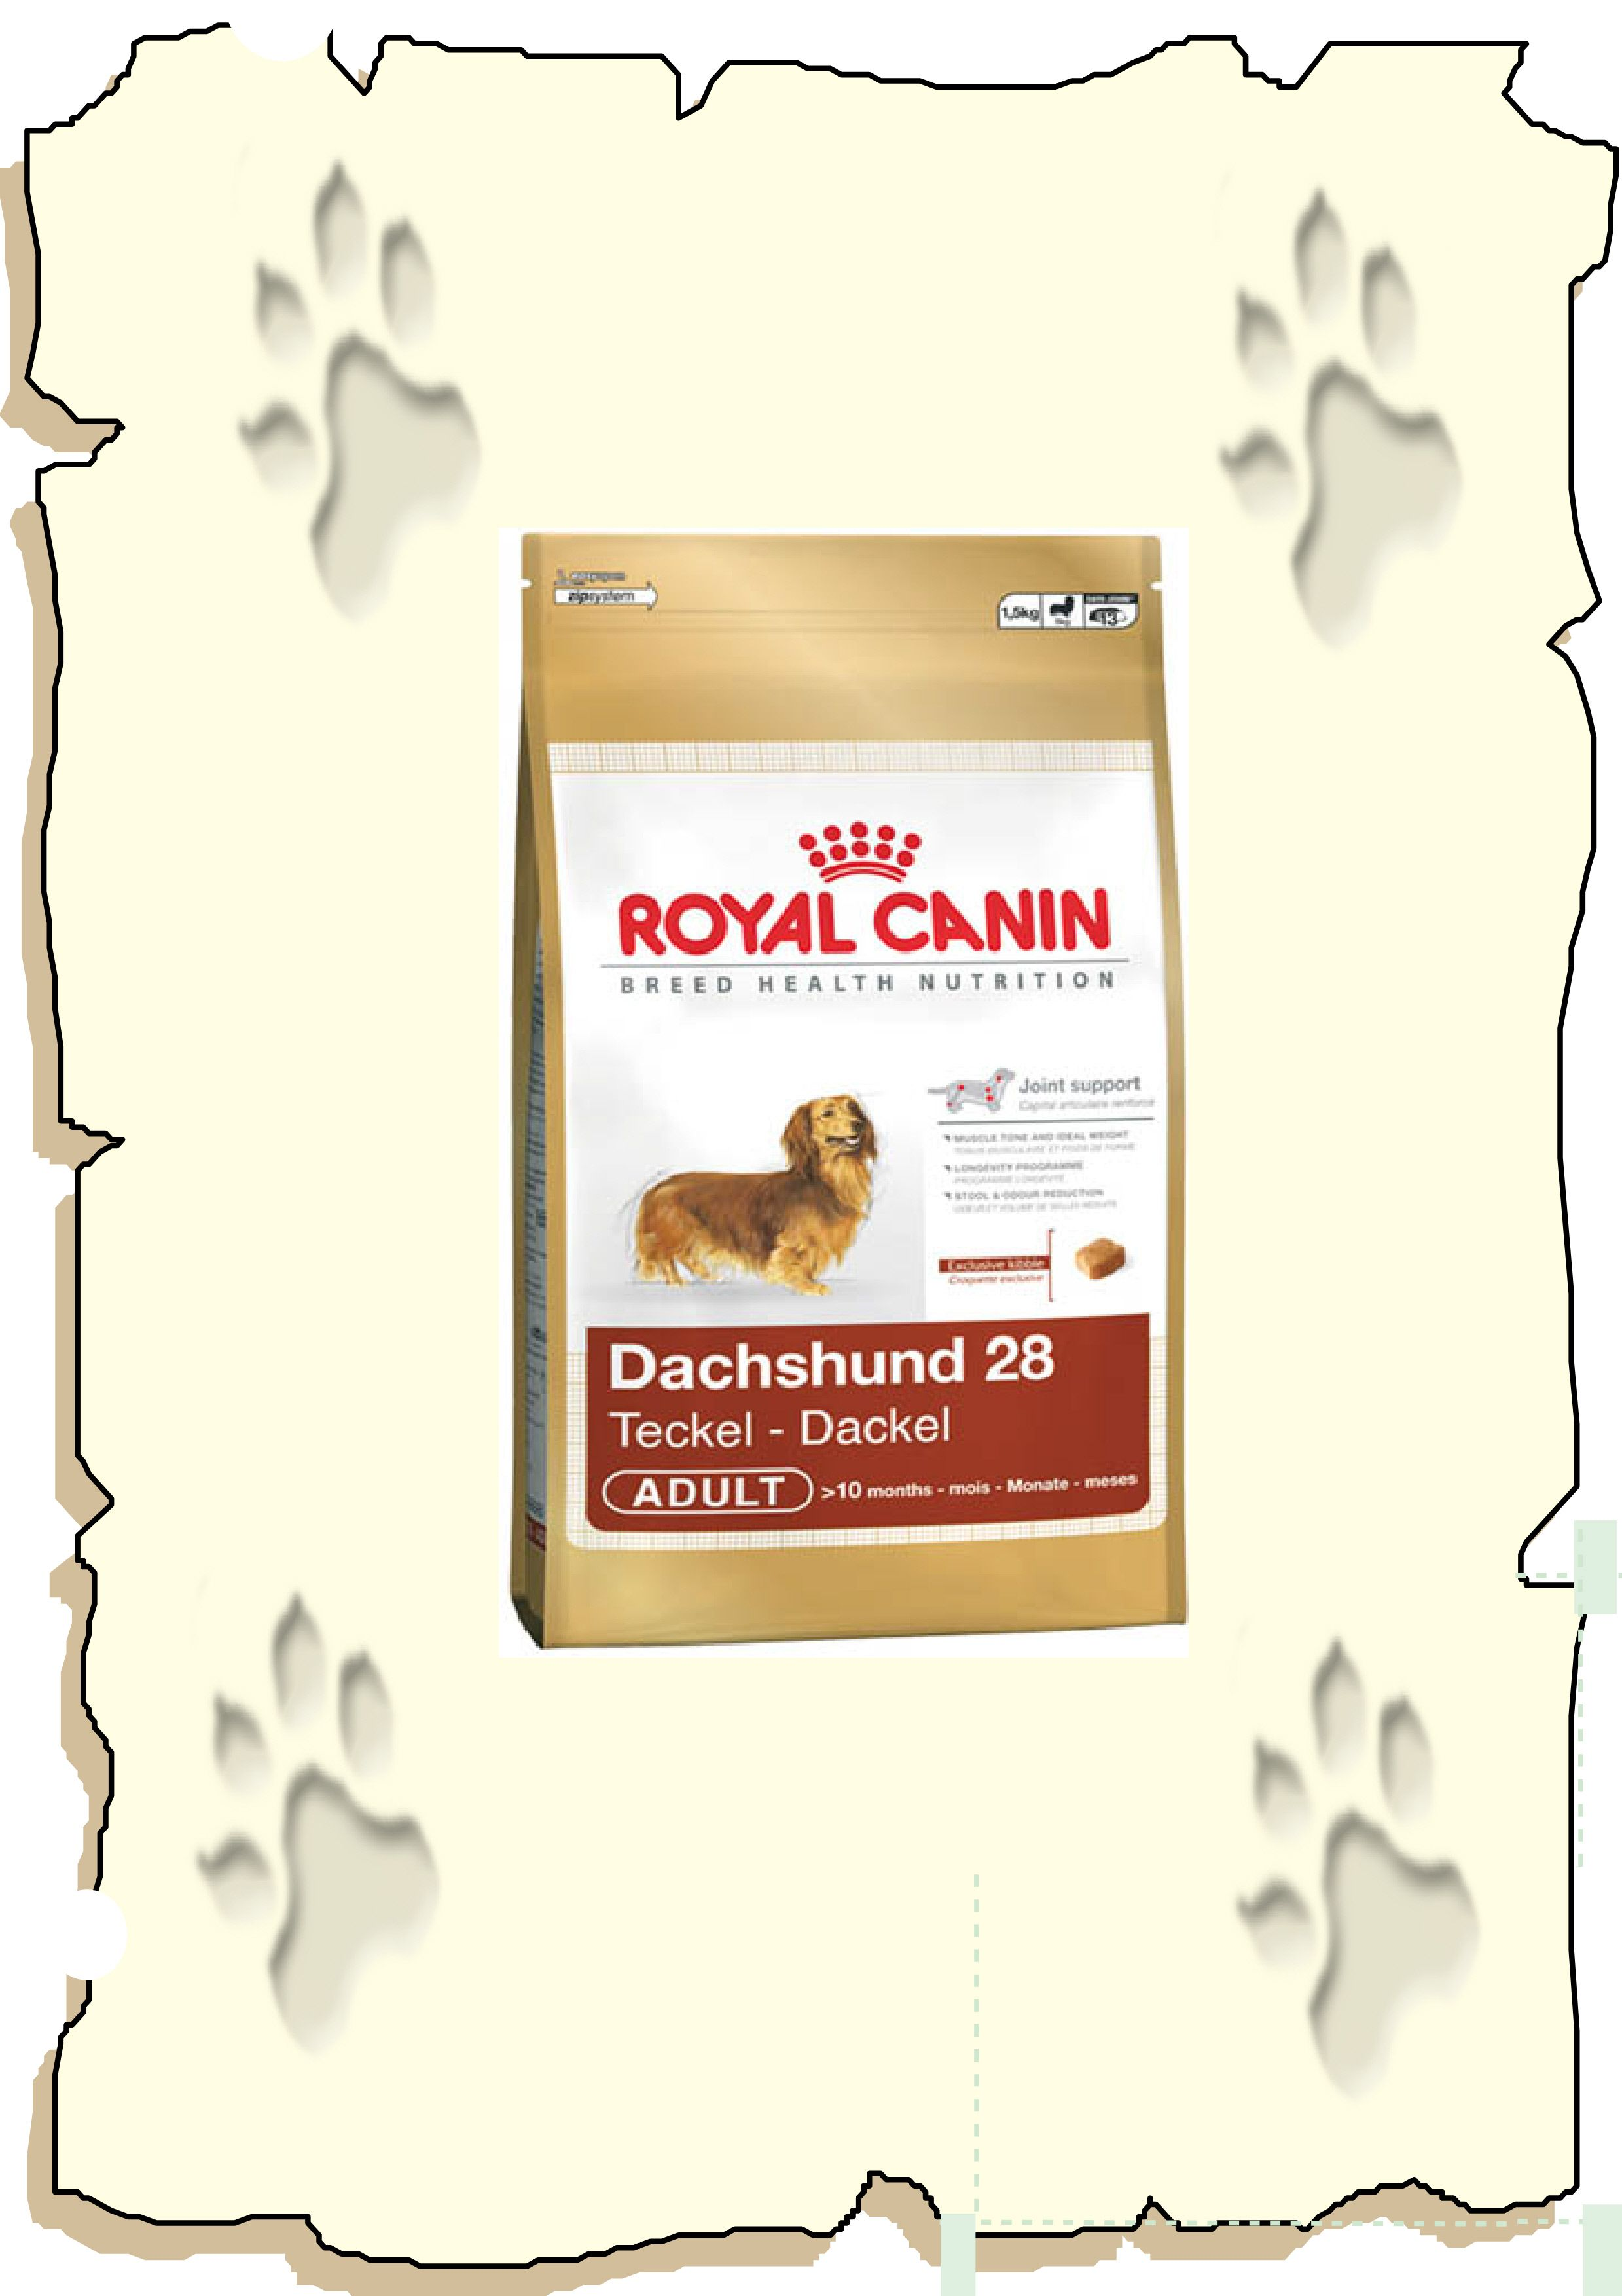 Royal Canin Dacshund Adult Ha My Dachshund Eats This Only The